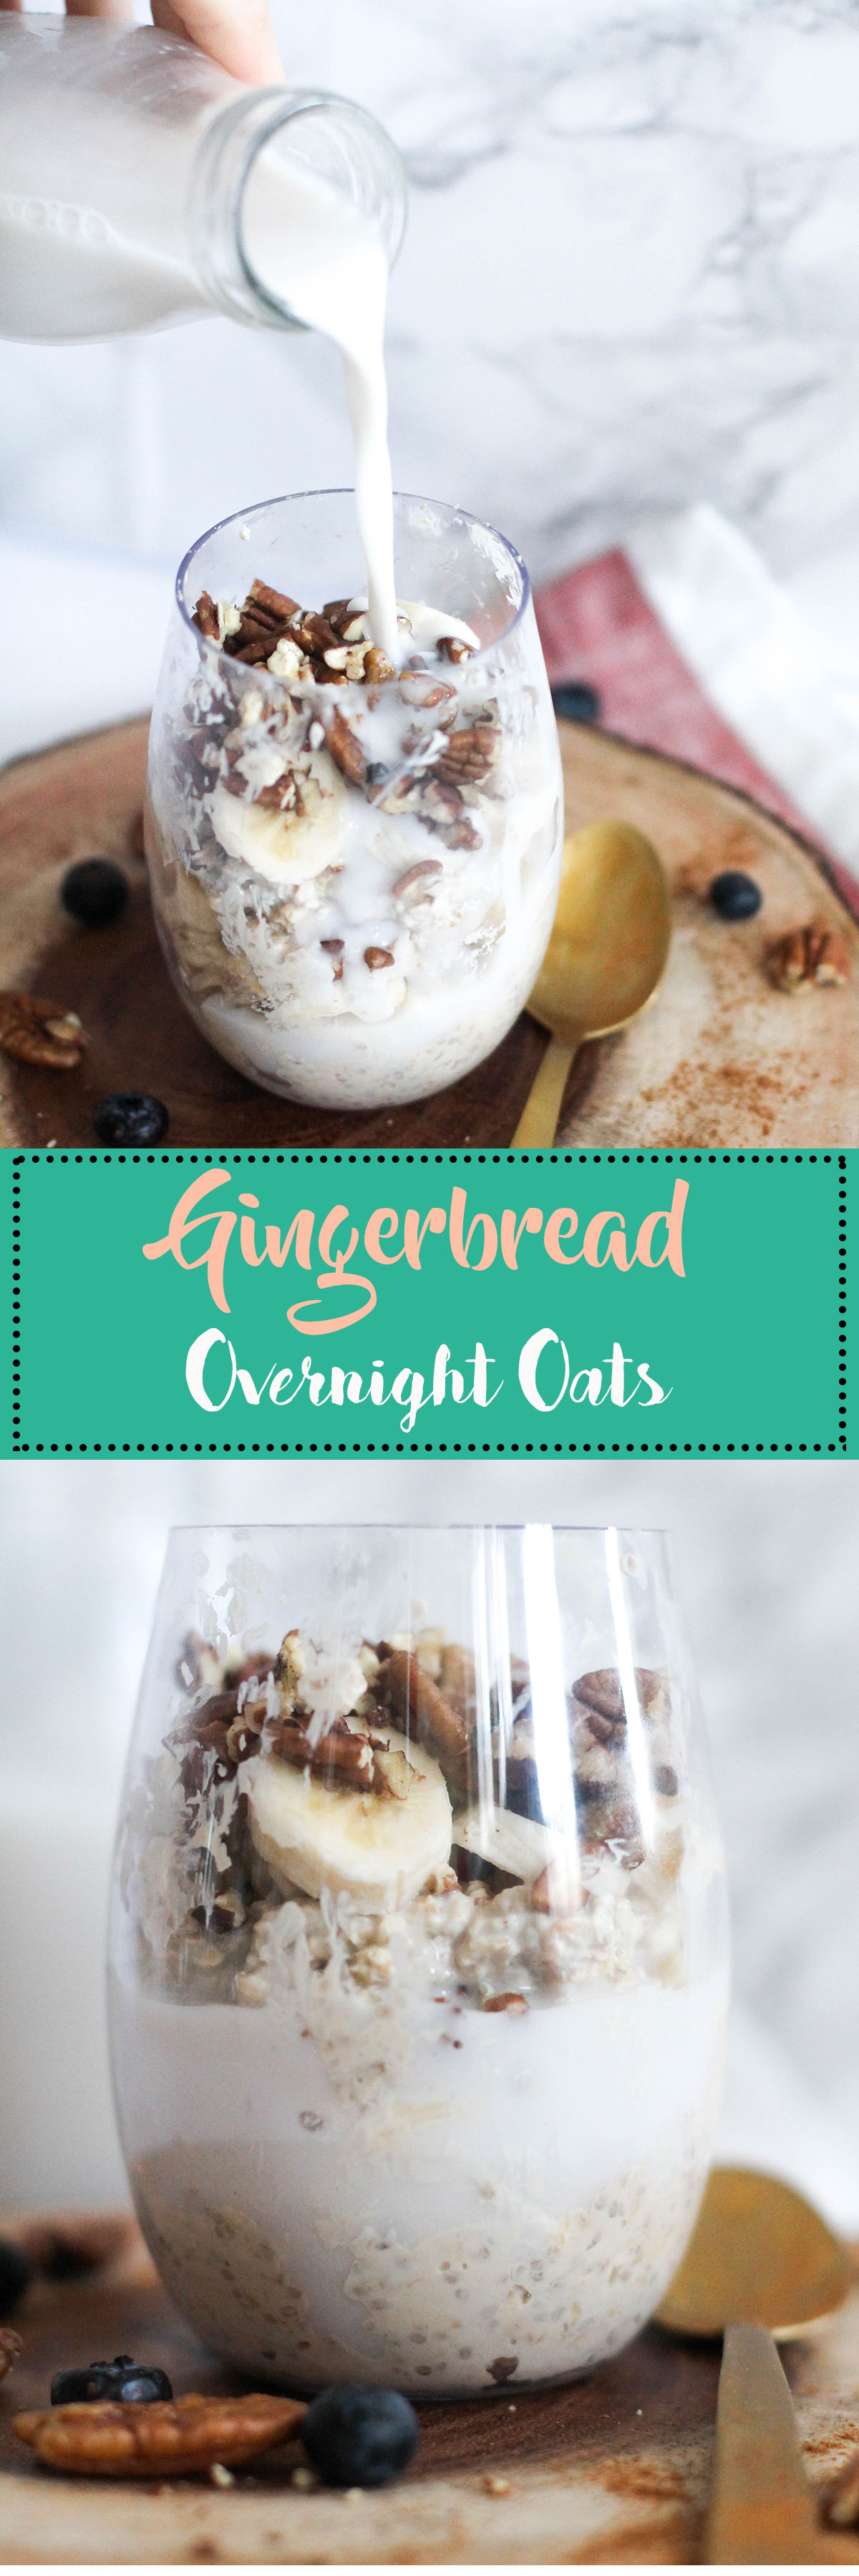 These gingerbread overnight oats take five minutes to make, require minimal ingredients, and make for the perfect breakfast! It's vegan friendly, gluten free, and full of protein.